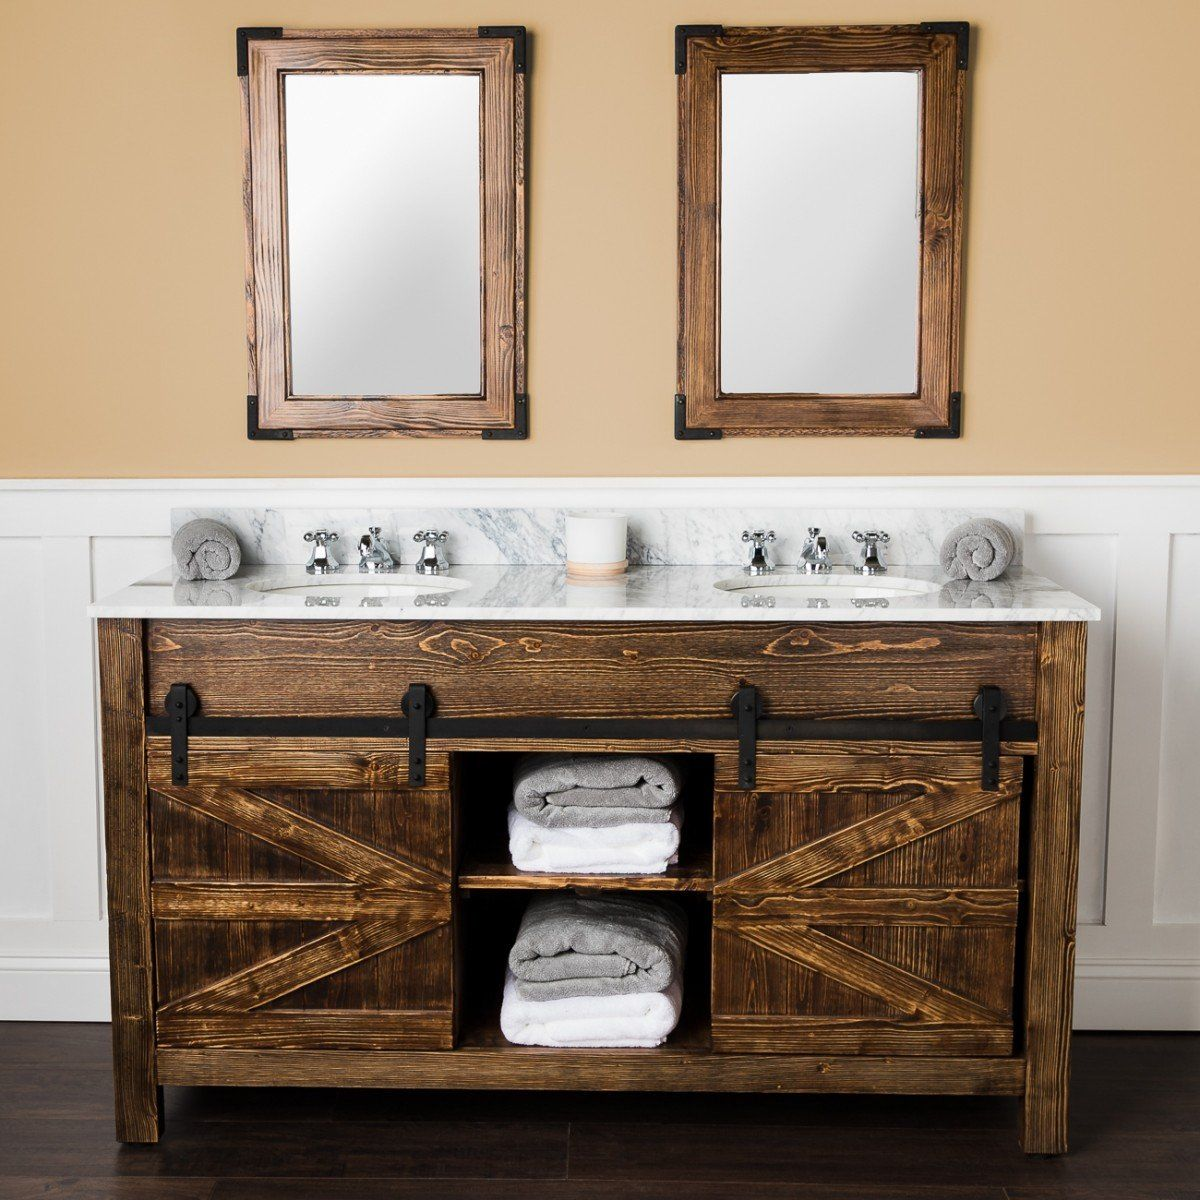 Cottage Barn Door Vanity With Mirror Bathroom Vanity Vanity